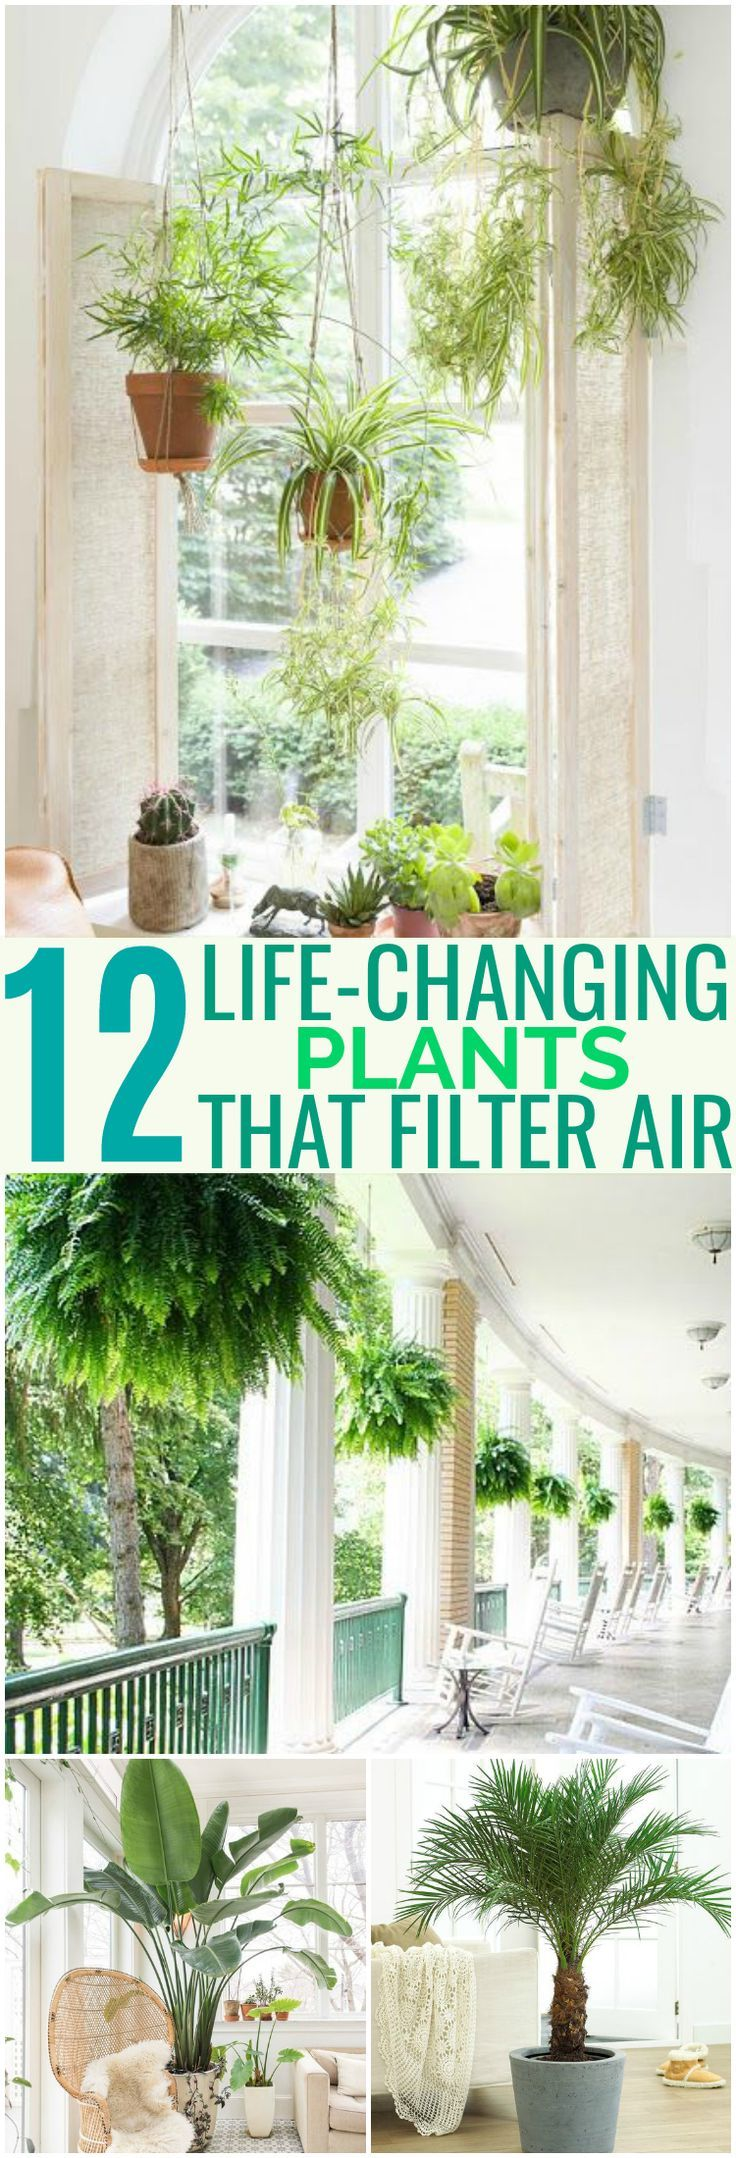 These 12 Air Filtering Plants Are Great For Homes With Cats As Pets! They aren't lethal if ingested and are also scientifically proven to clean your air!